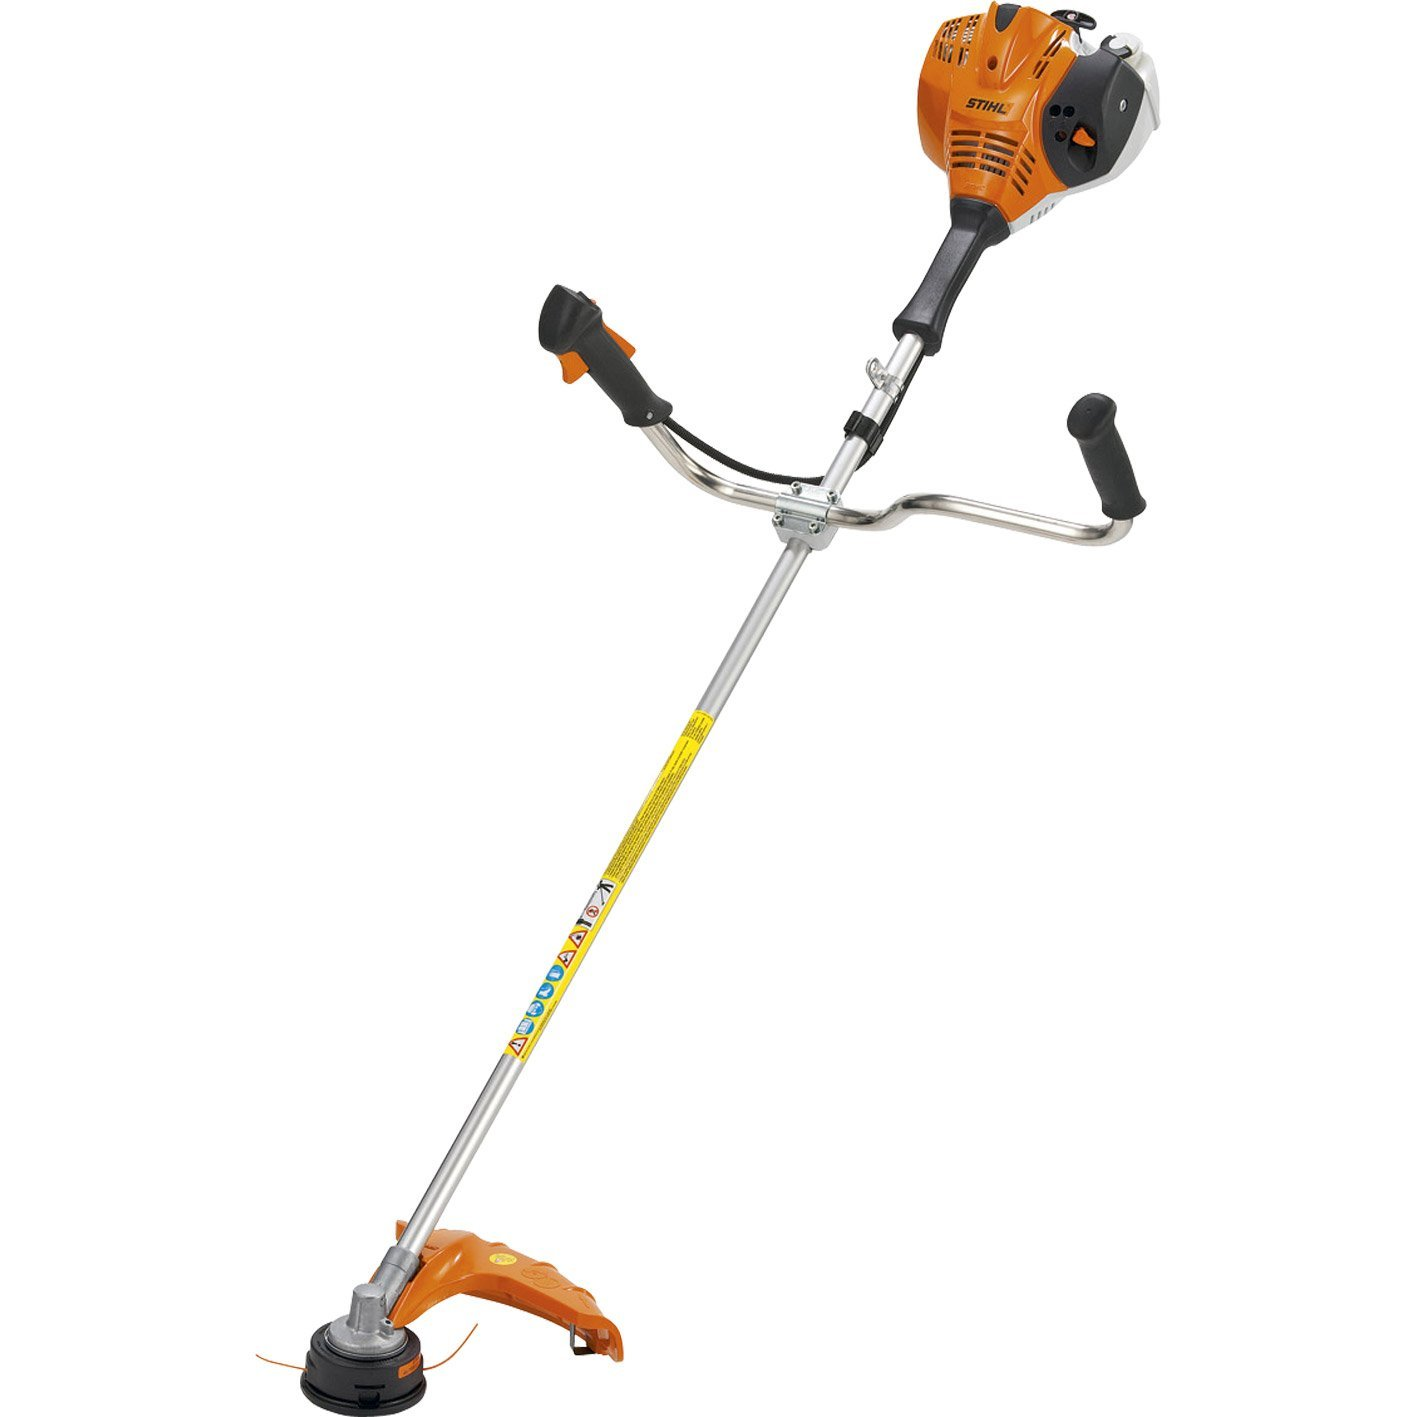 stihl fs 70 c e brushcutter douglas forest and garden